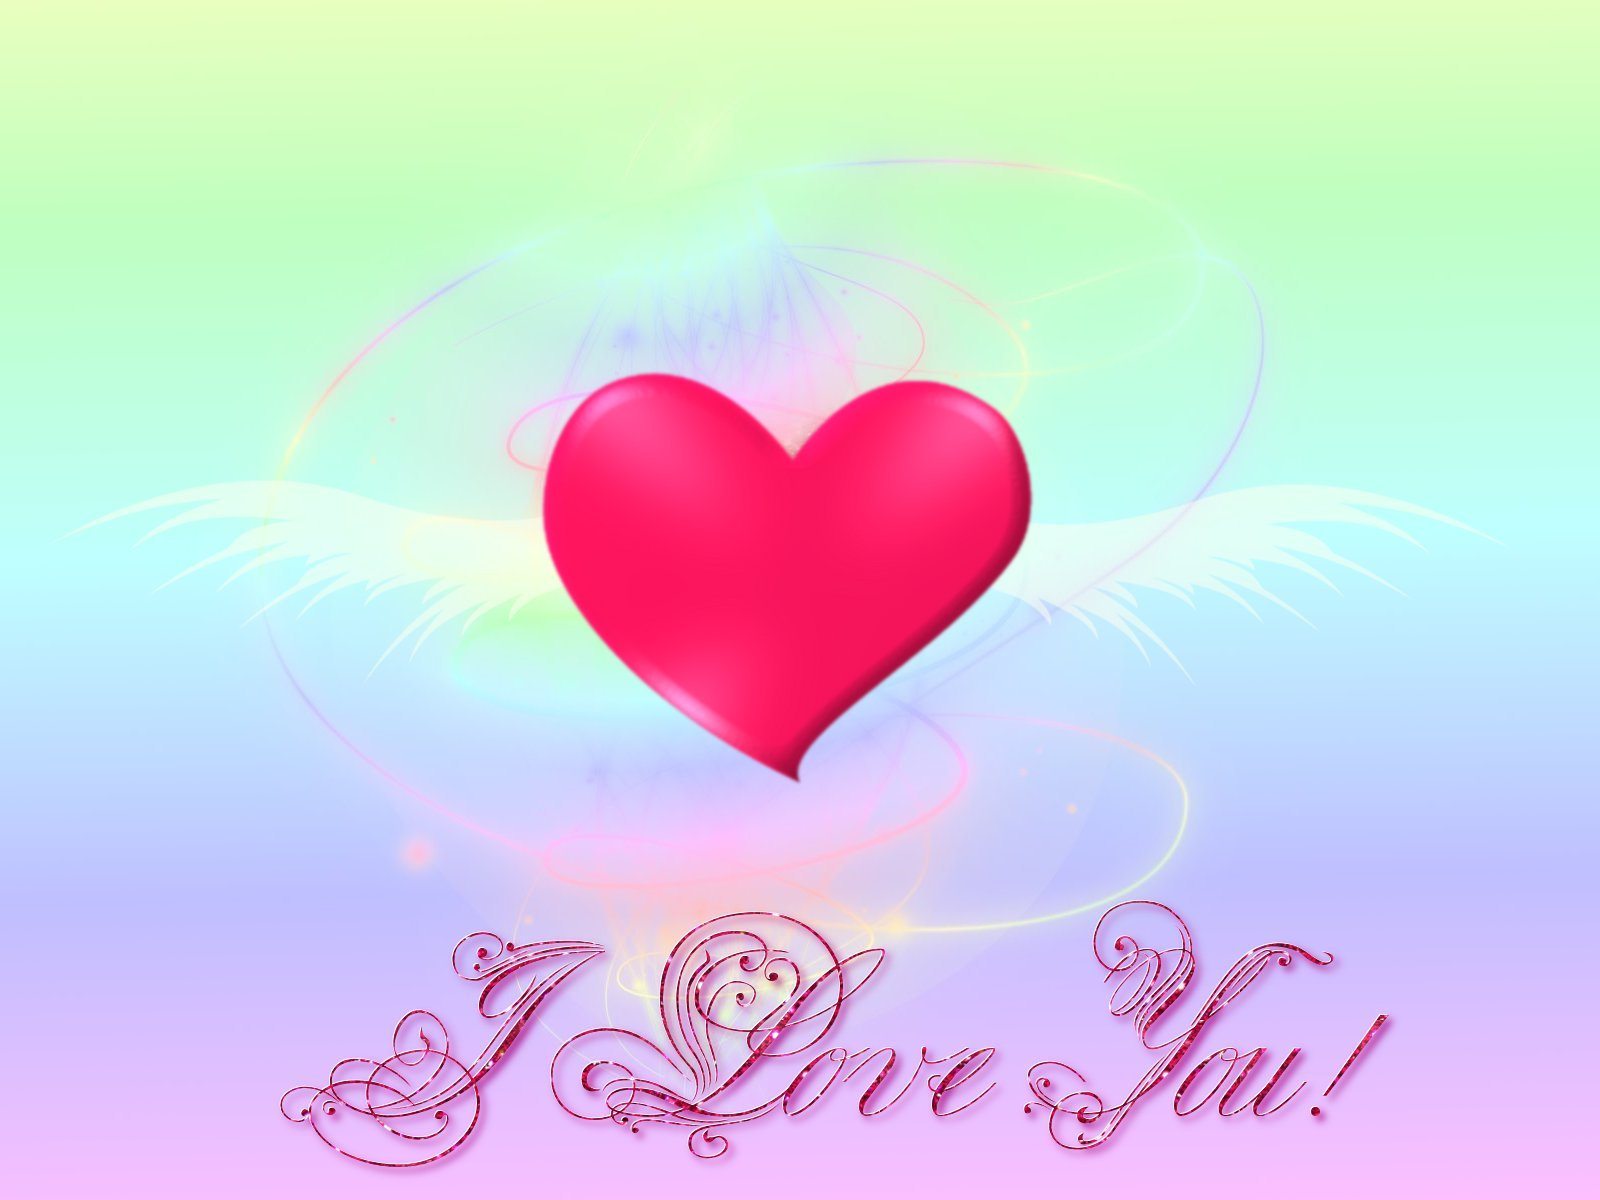 Wallpaper download love you - Dil I Love You Wallpaper Download